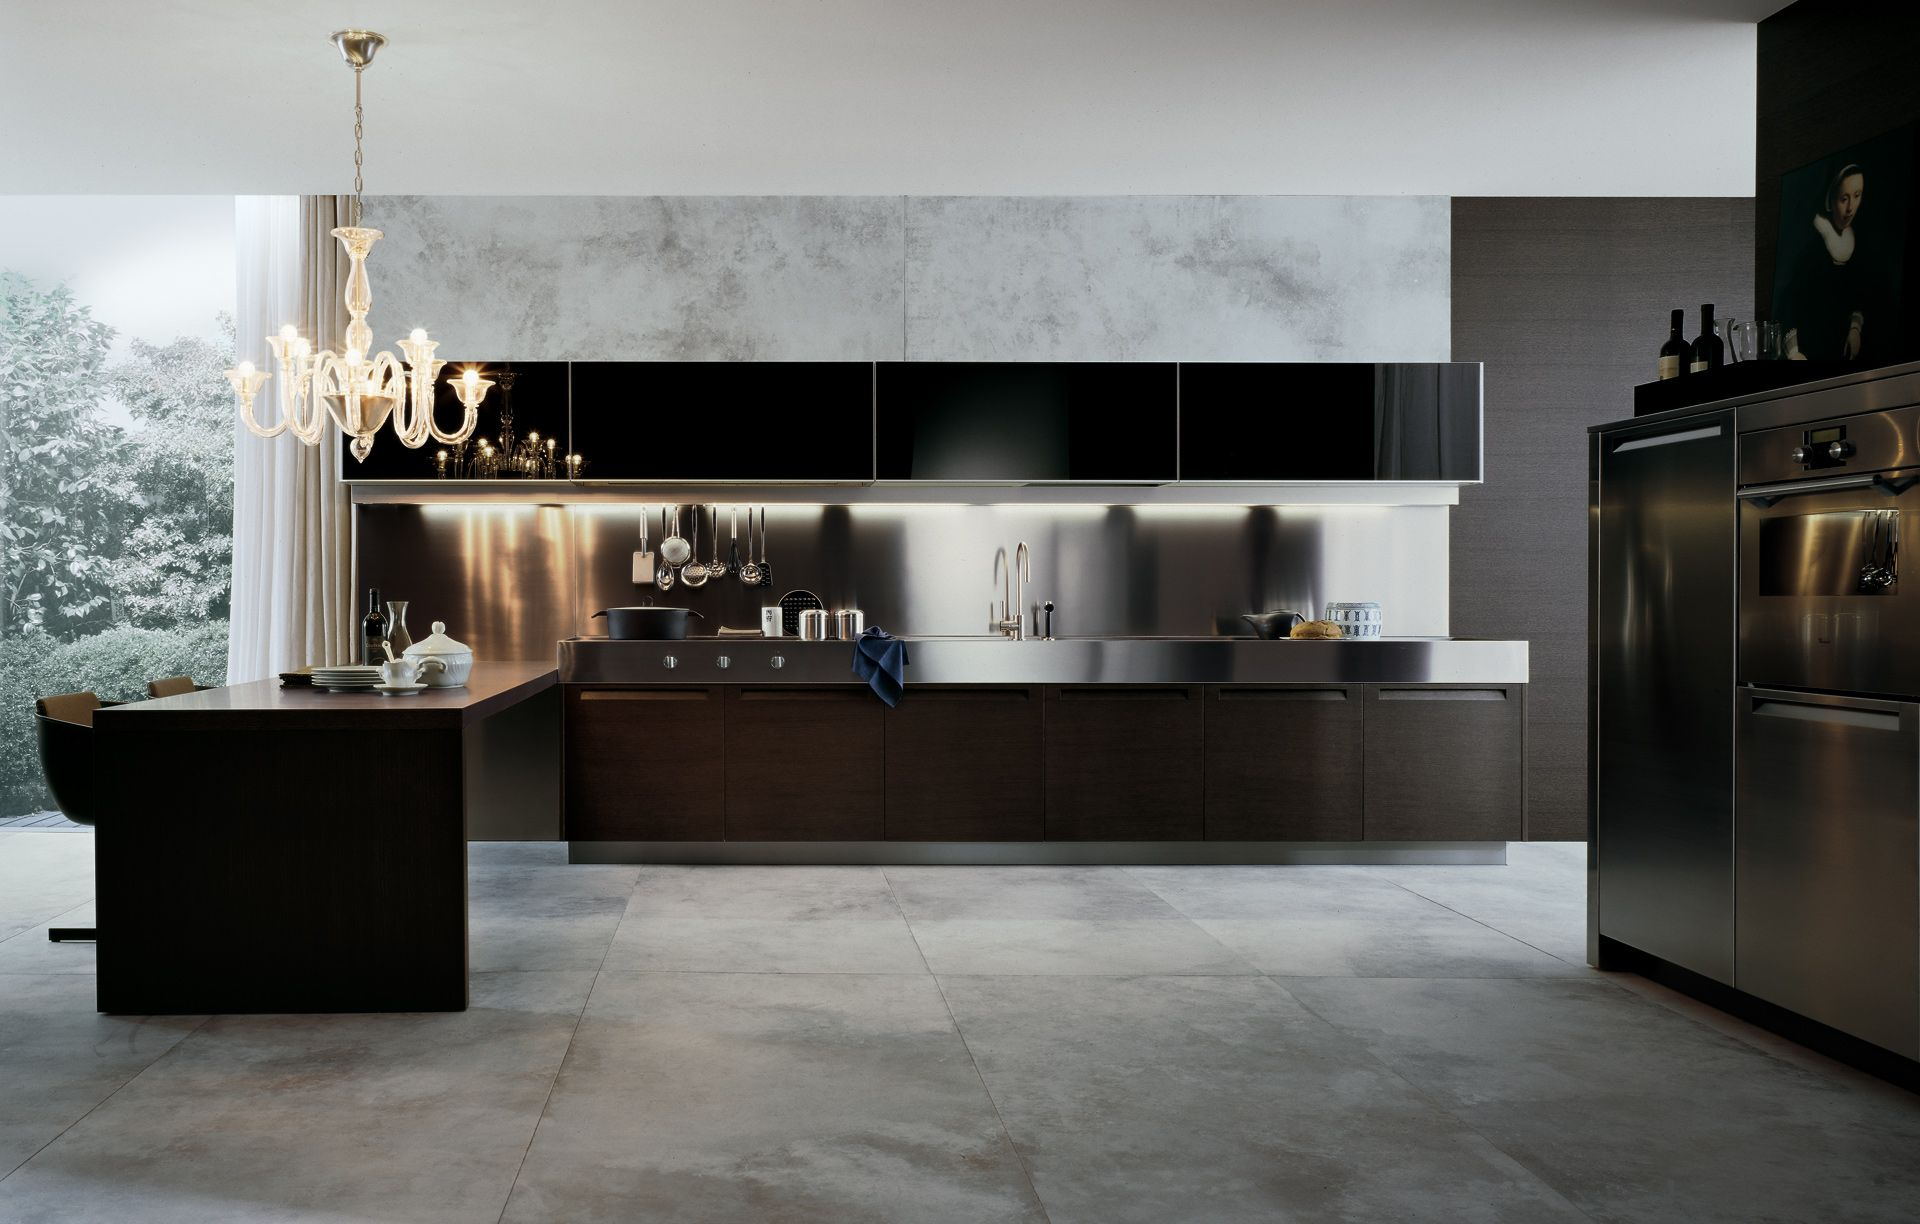 Minimal Kitchen Cabinetry Designed By Poliform Kitchen Concepts Kitchen Fittings Minimal Kitchen